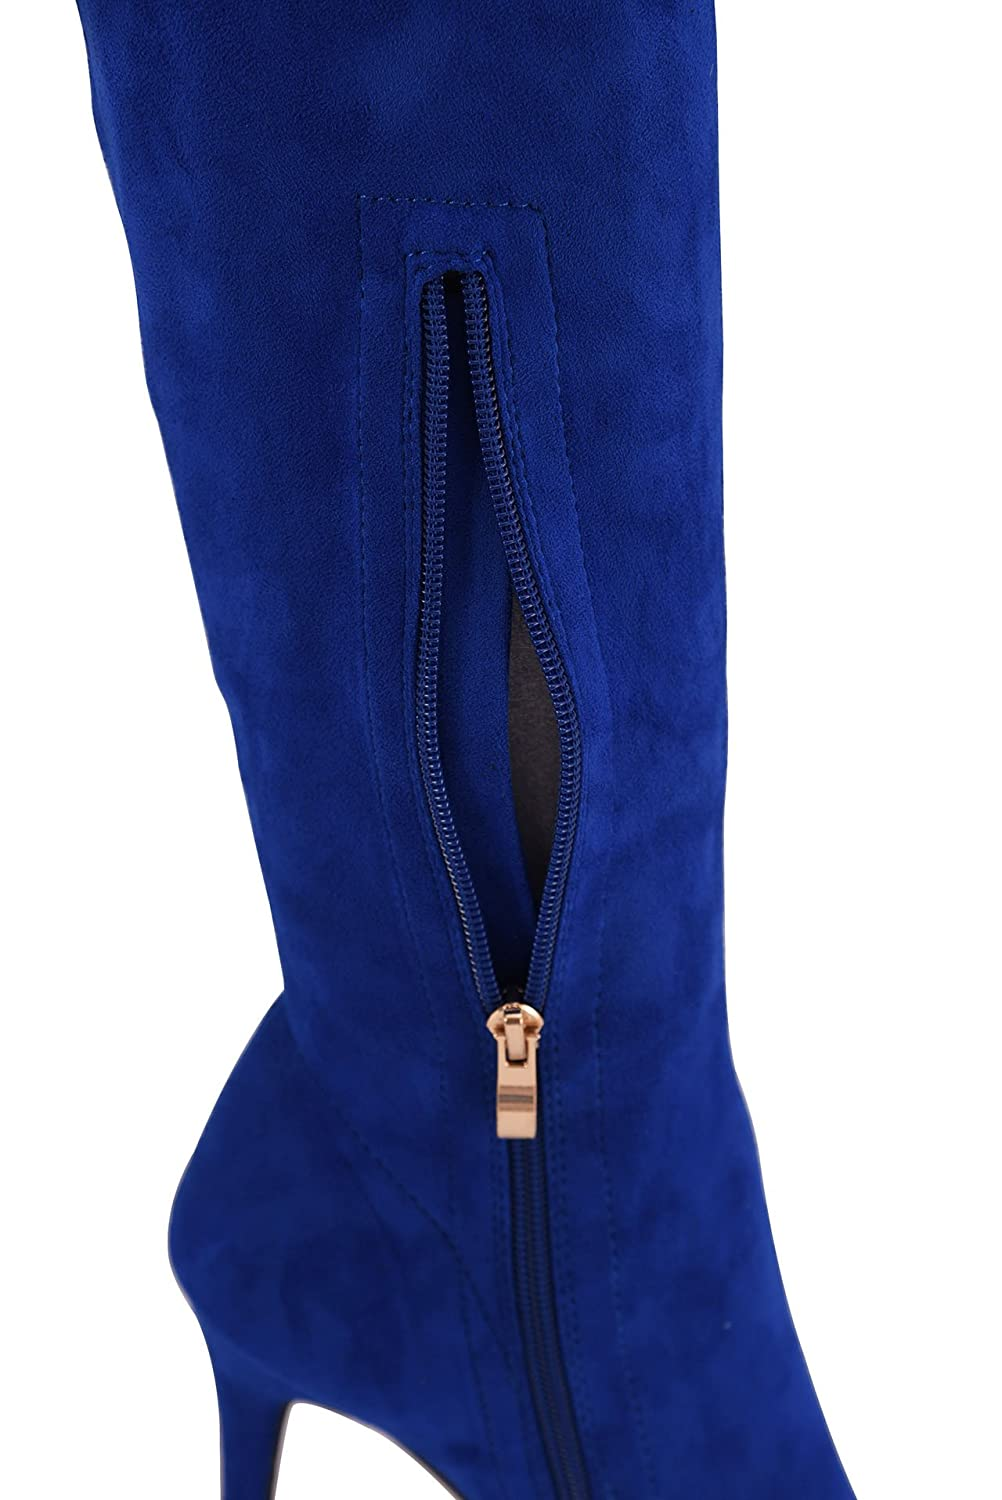 CAMSSOO Women's Thigh High Stretch Boots Side Zipper Pointy Toe Stiletto Heel Knee High Boots B07DX4GZZQ US7/EUR37|Royal Blue Velveteen